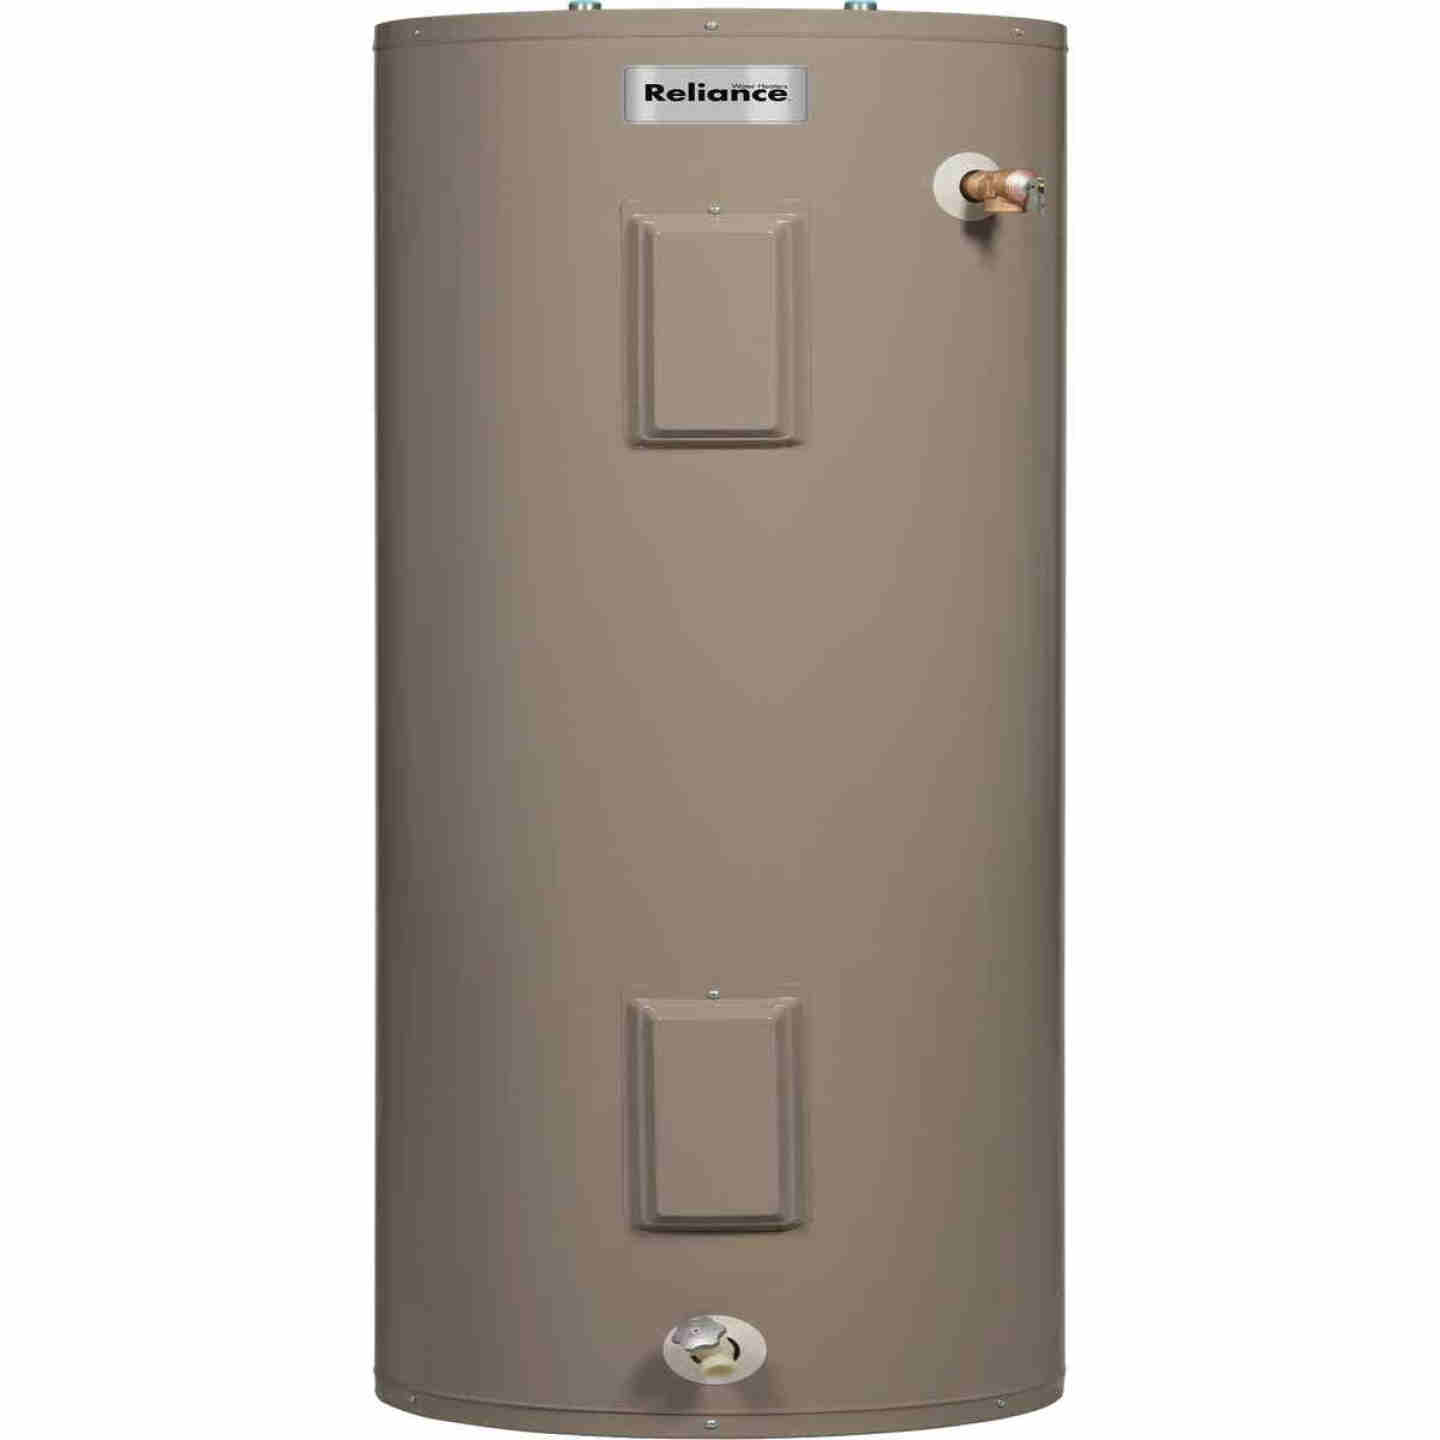 Reliance 30 Gal. Electric LowBoy Water Heater with Blanket Image 1